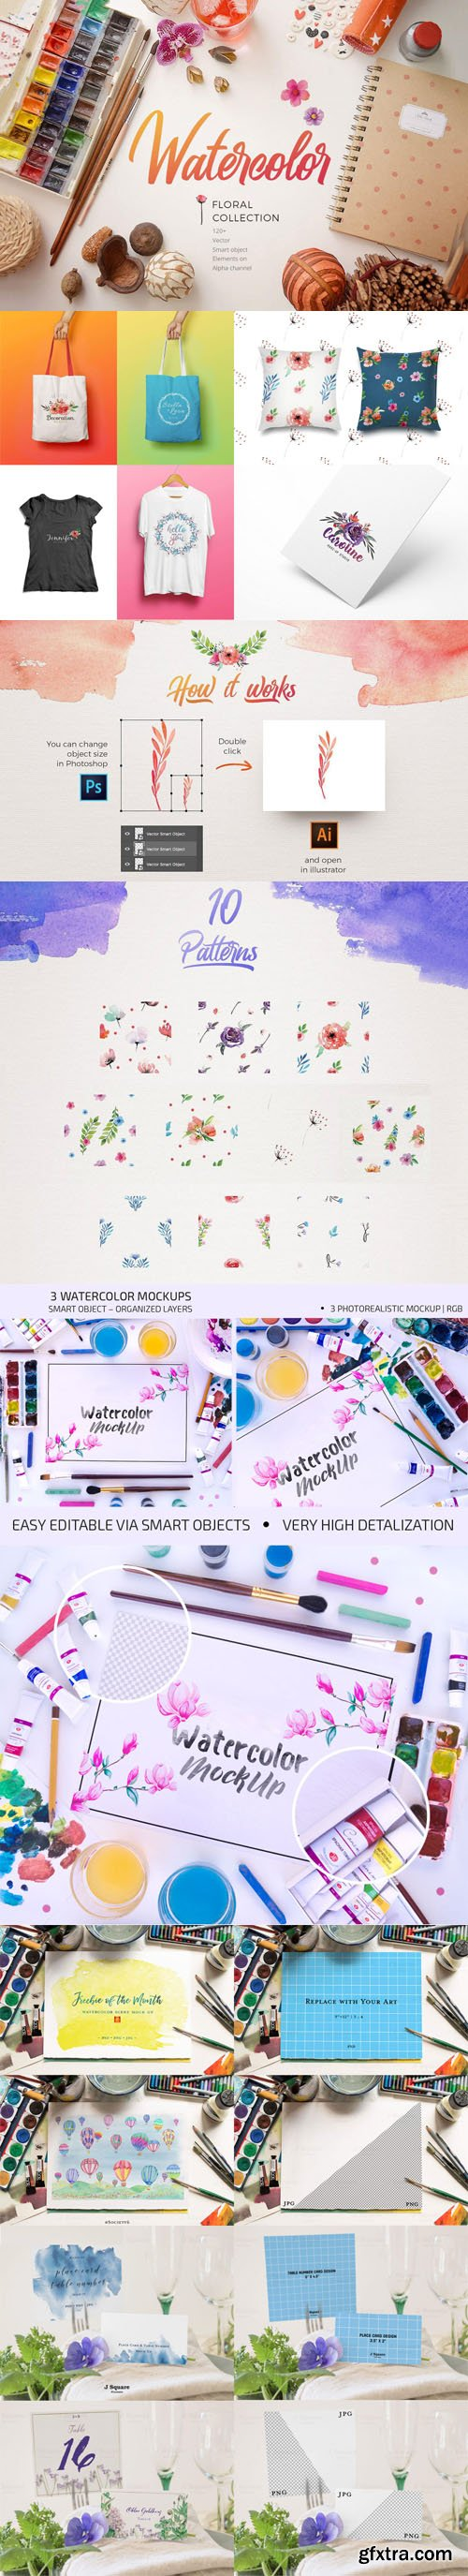 Watecolor PSD Mockups Collection